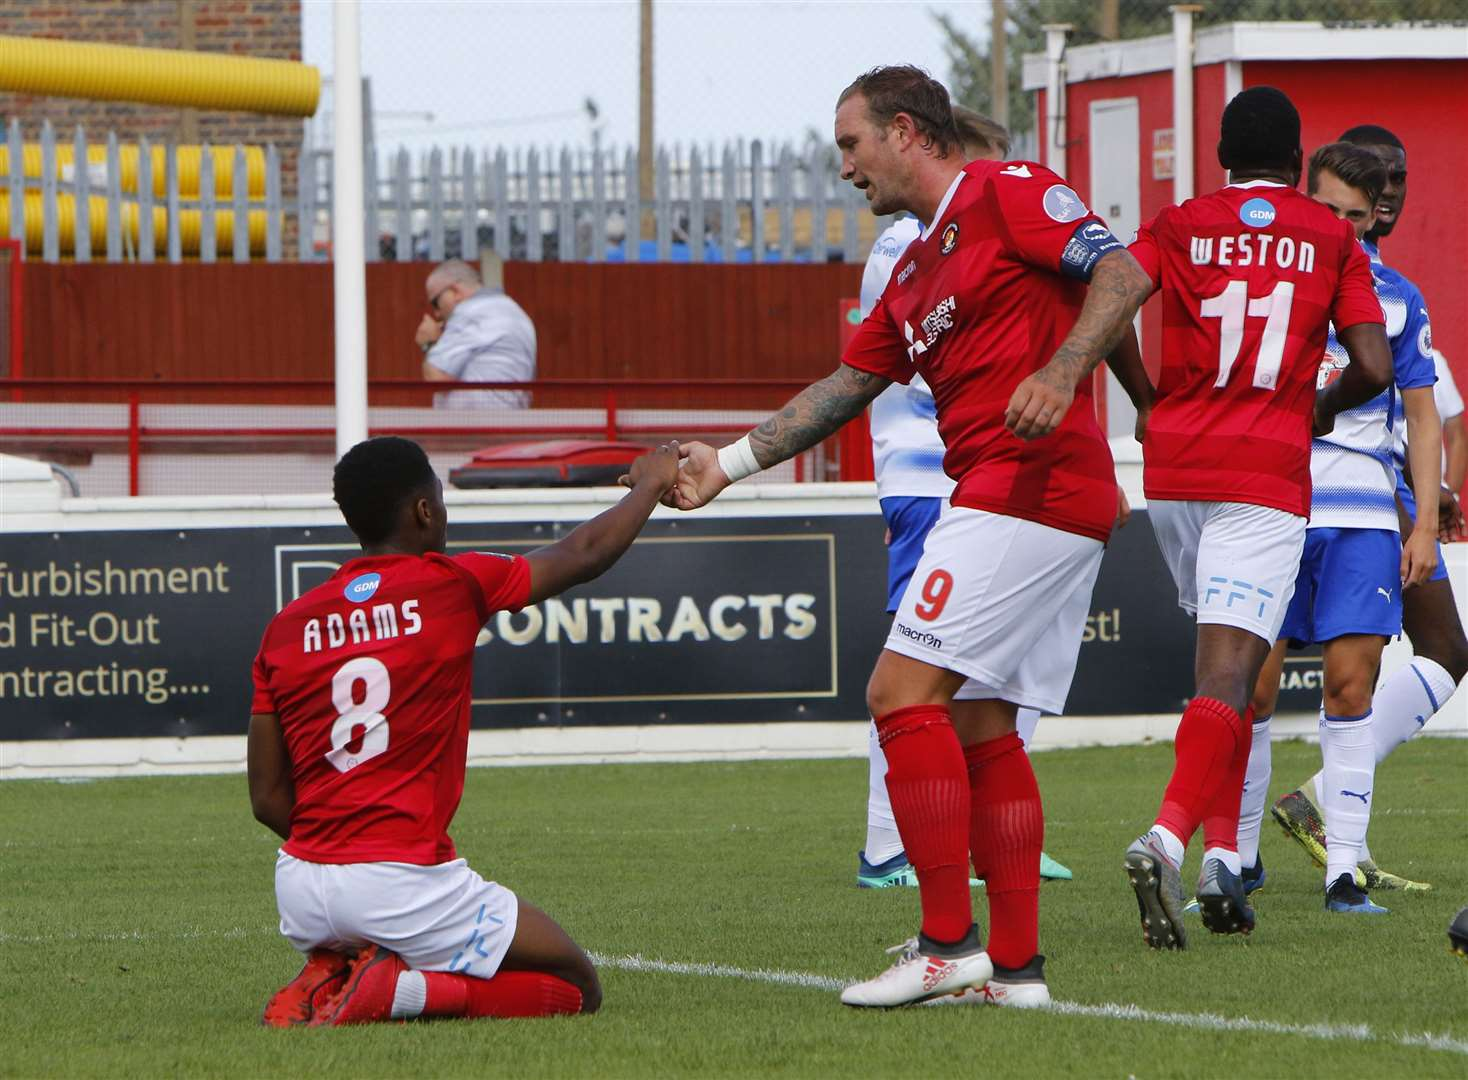 Danny Kedwell gives Ebou Adams a helping hand Picture: Andy Jones